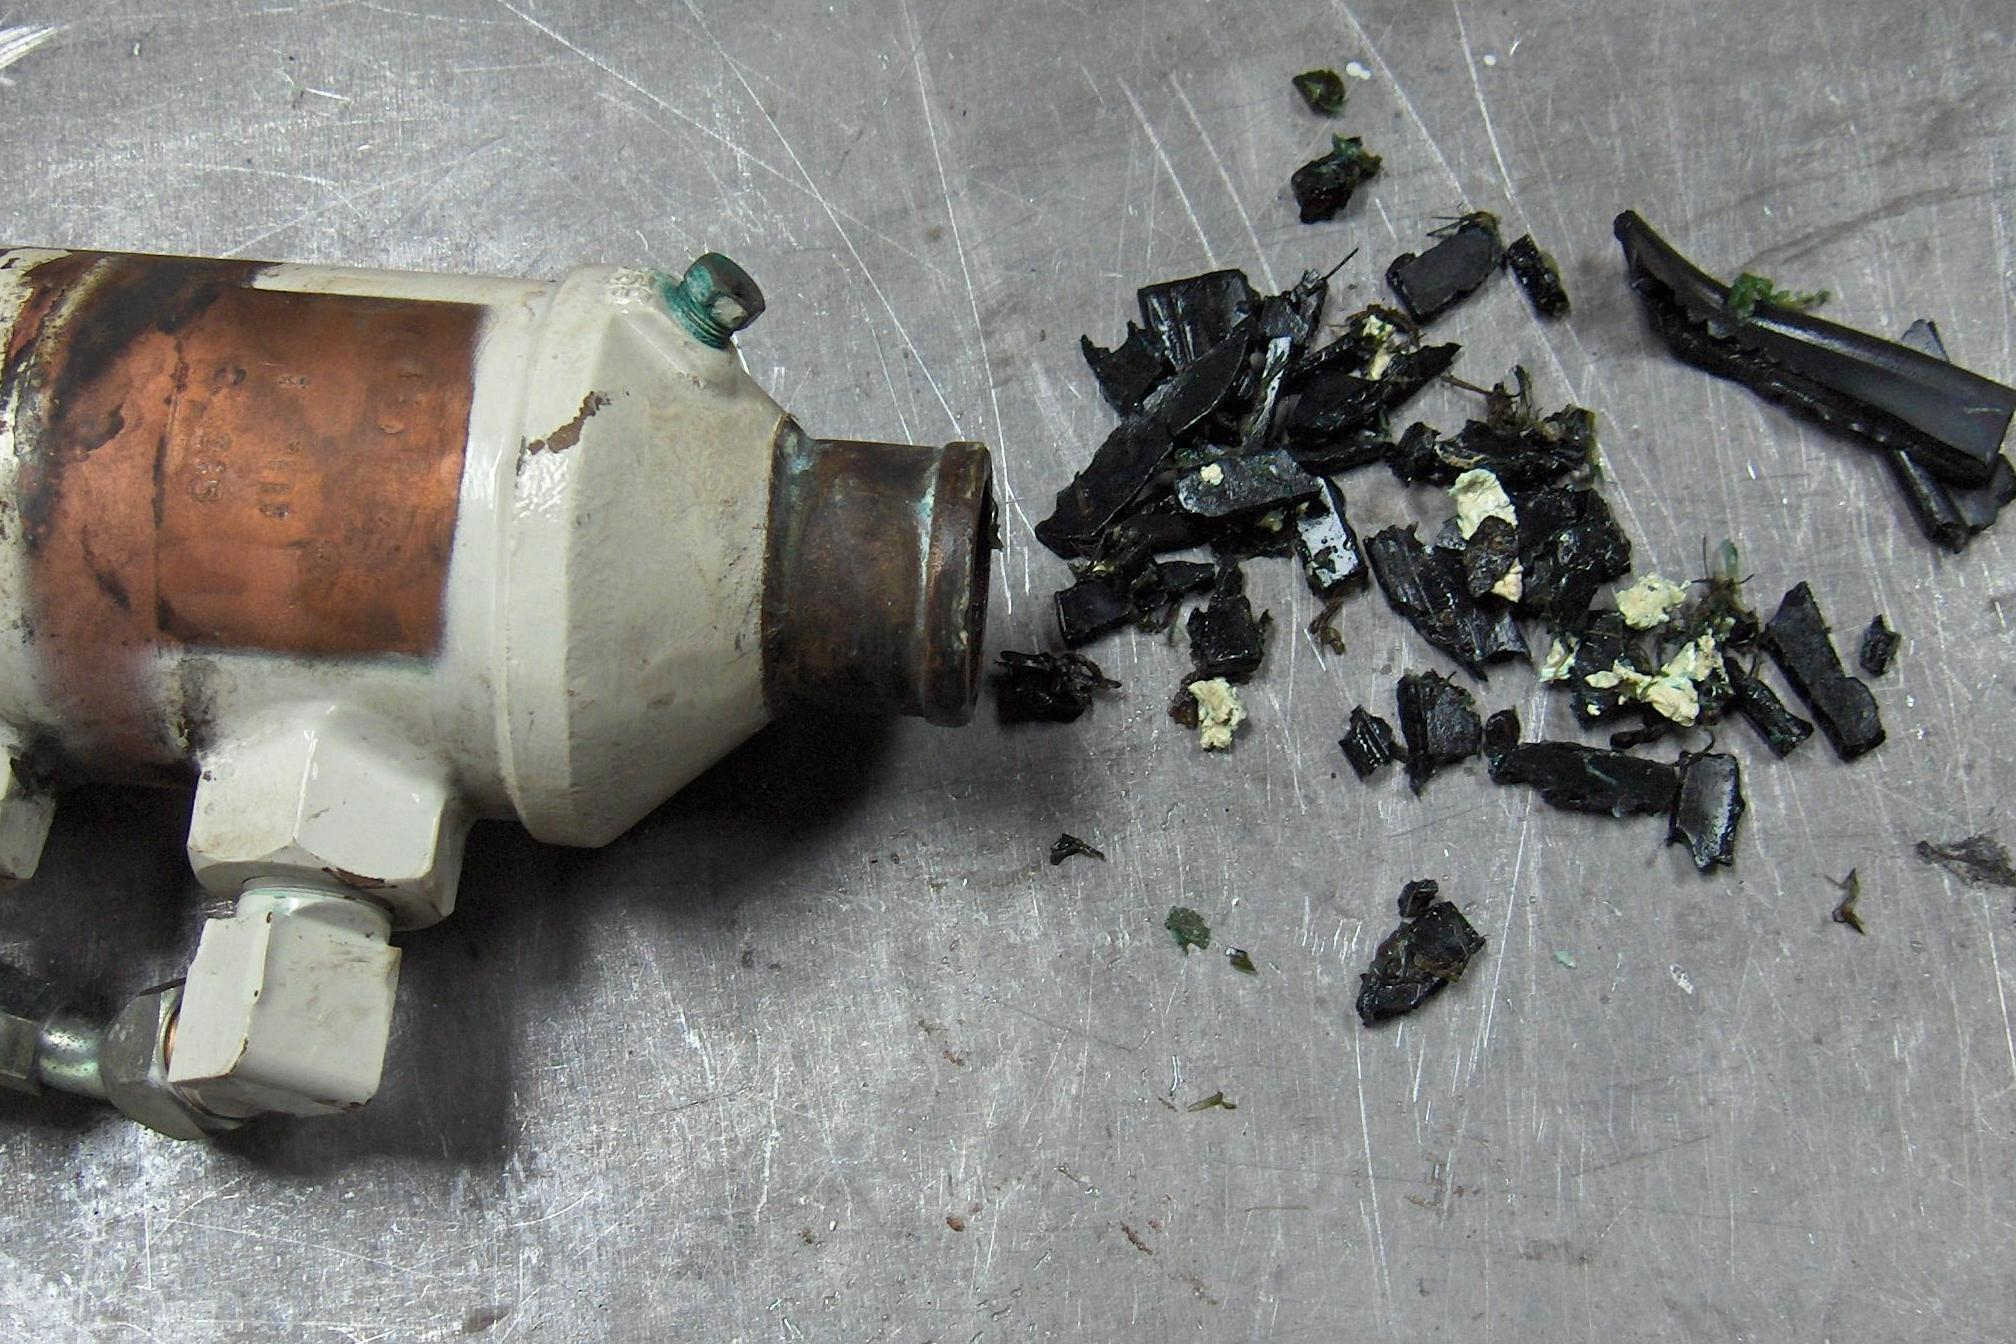 Raw Water Impeller Fragments Recovered From An Oil Cooler